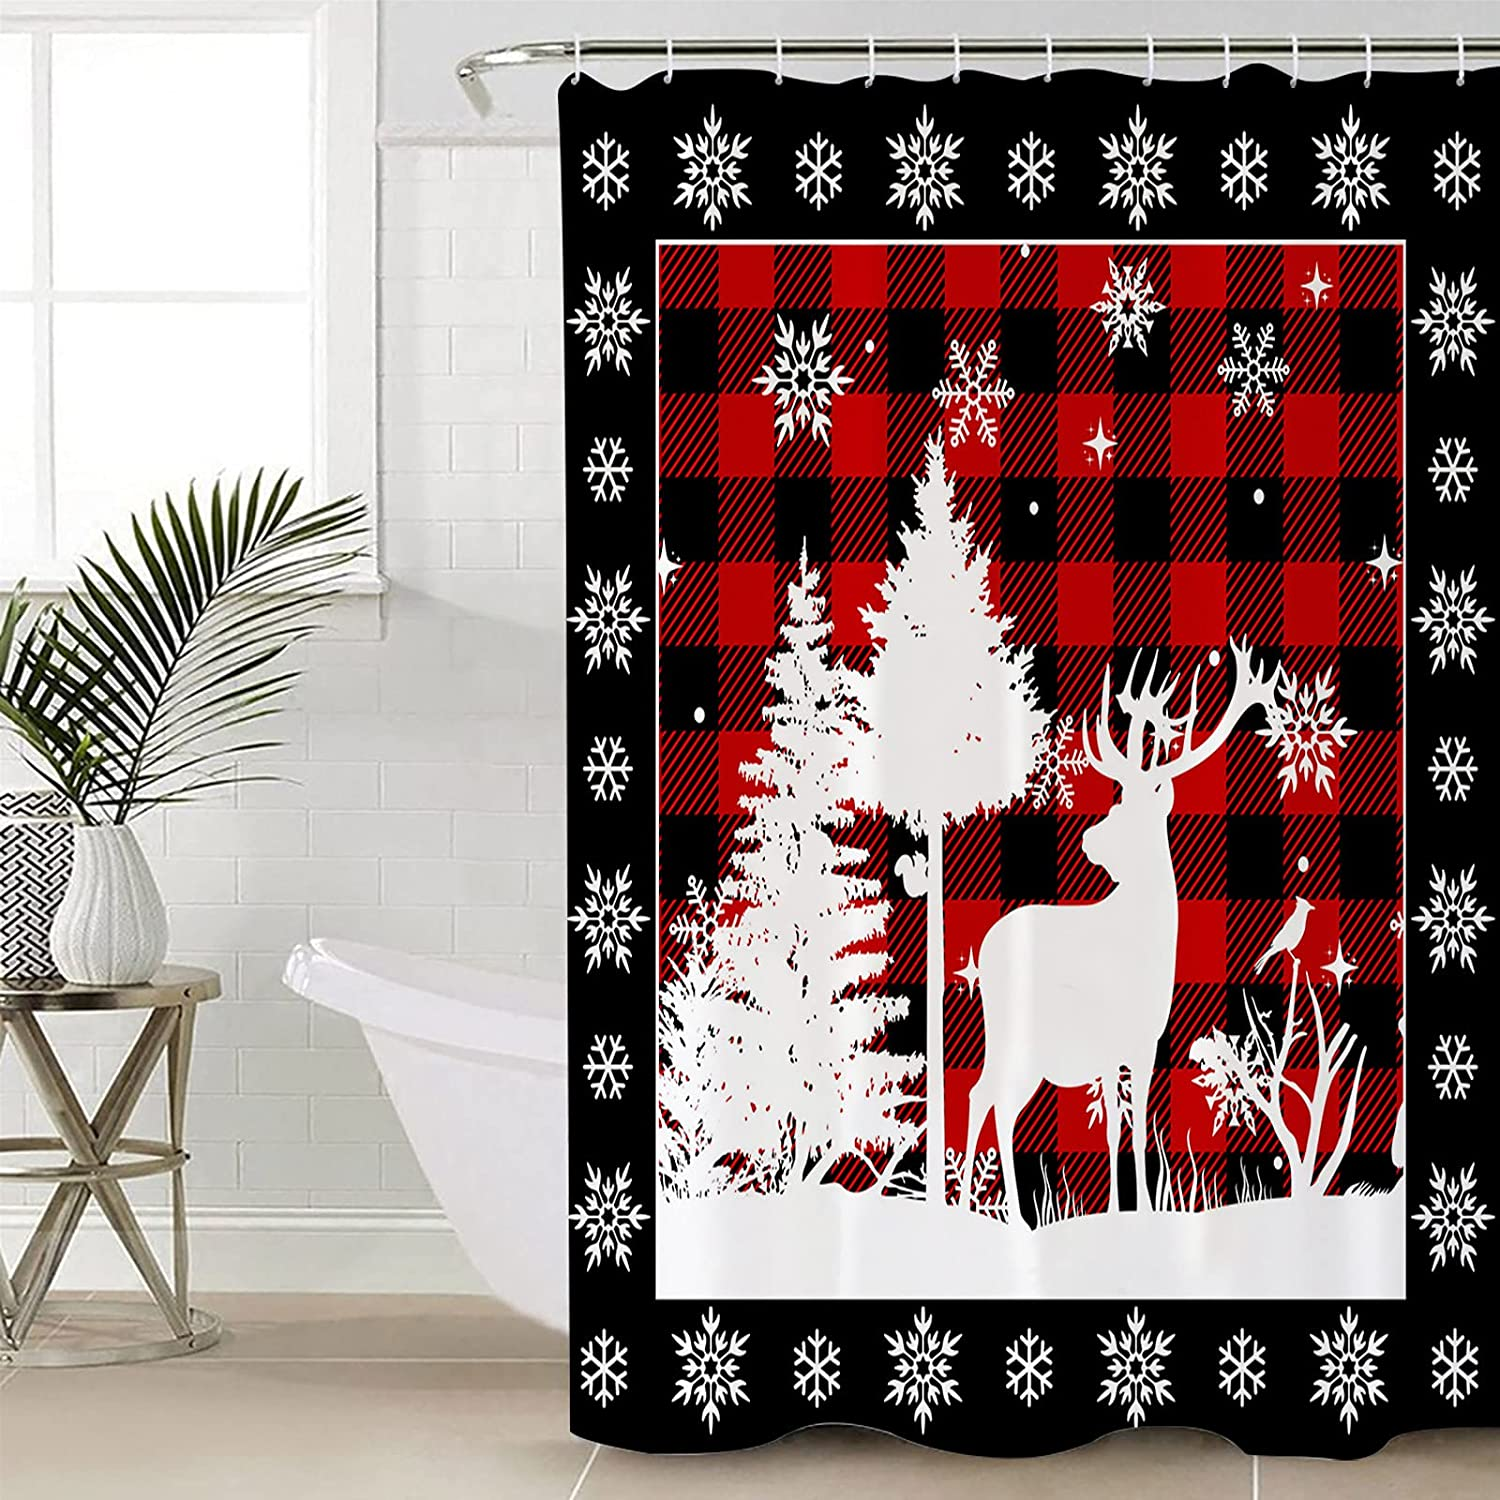 Anzona Special price White Xmas Tree Attention brand Elk Curtains Waterproof Snowflake Shower